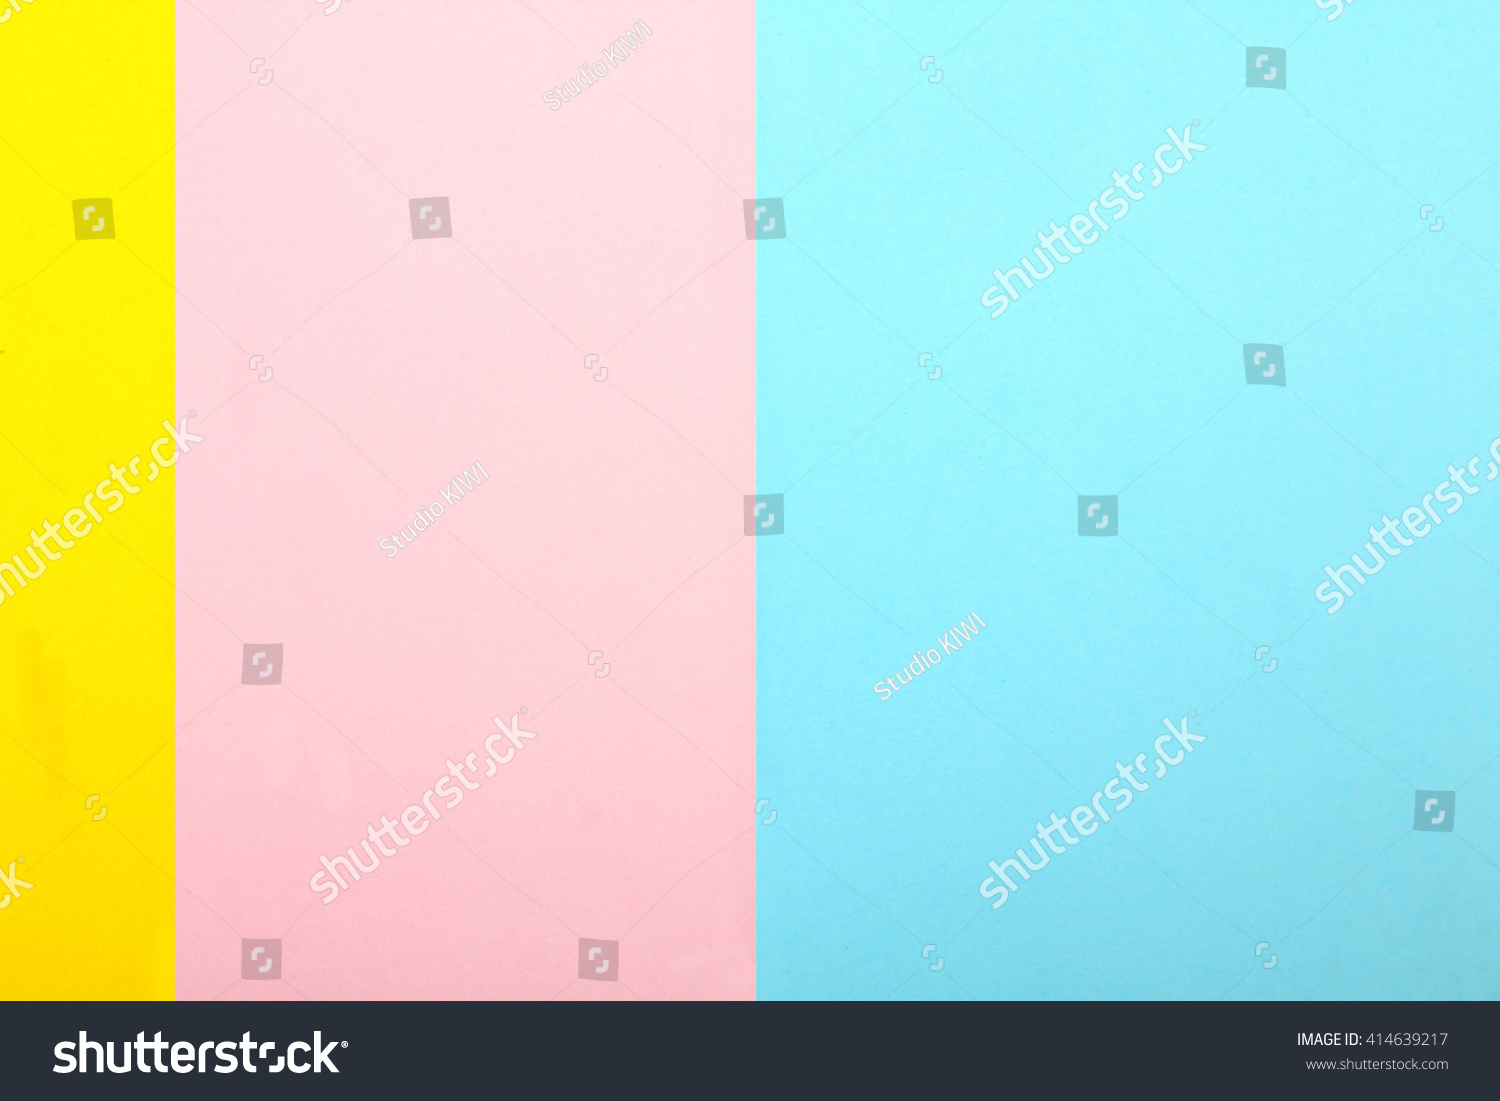 Color Papers Geometry Flat Composition Background Stock Photo ...